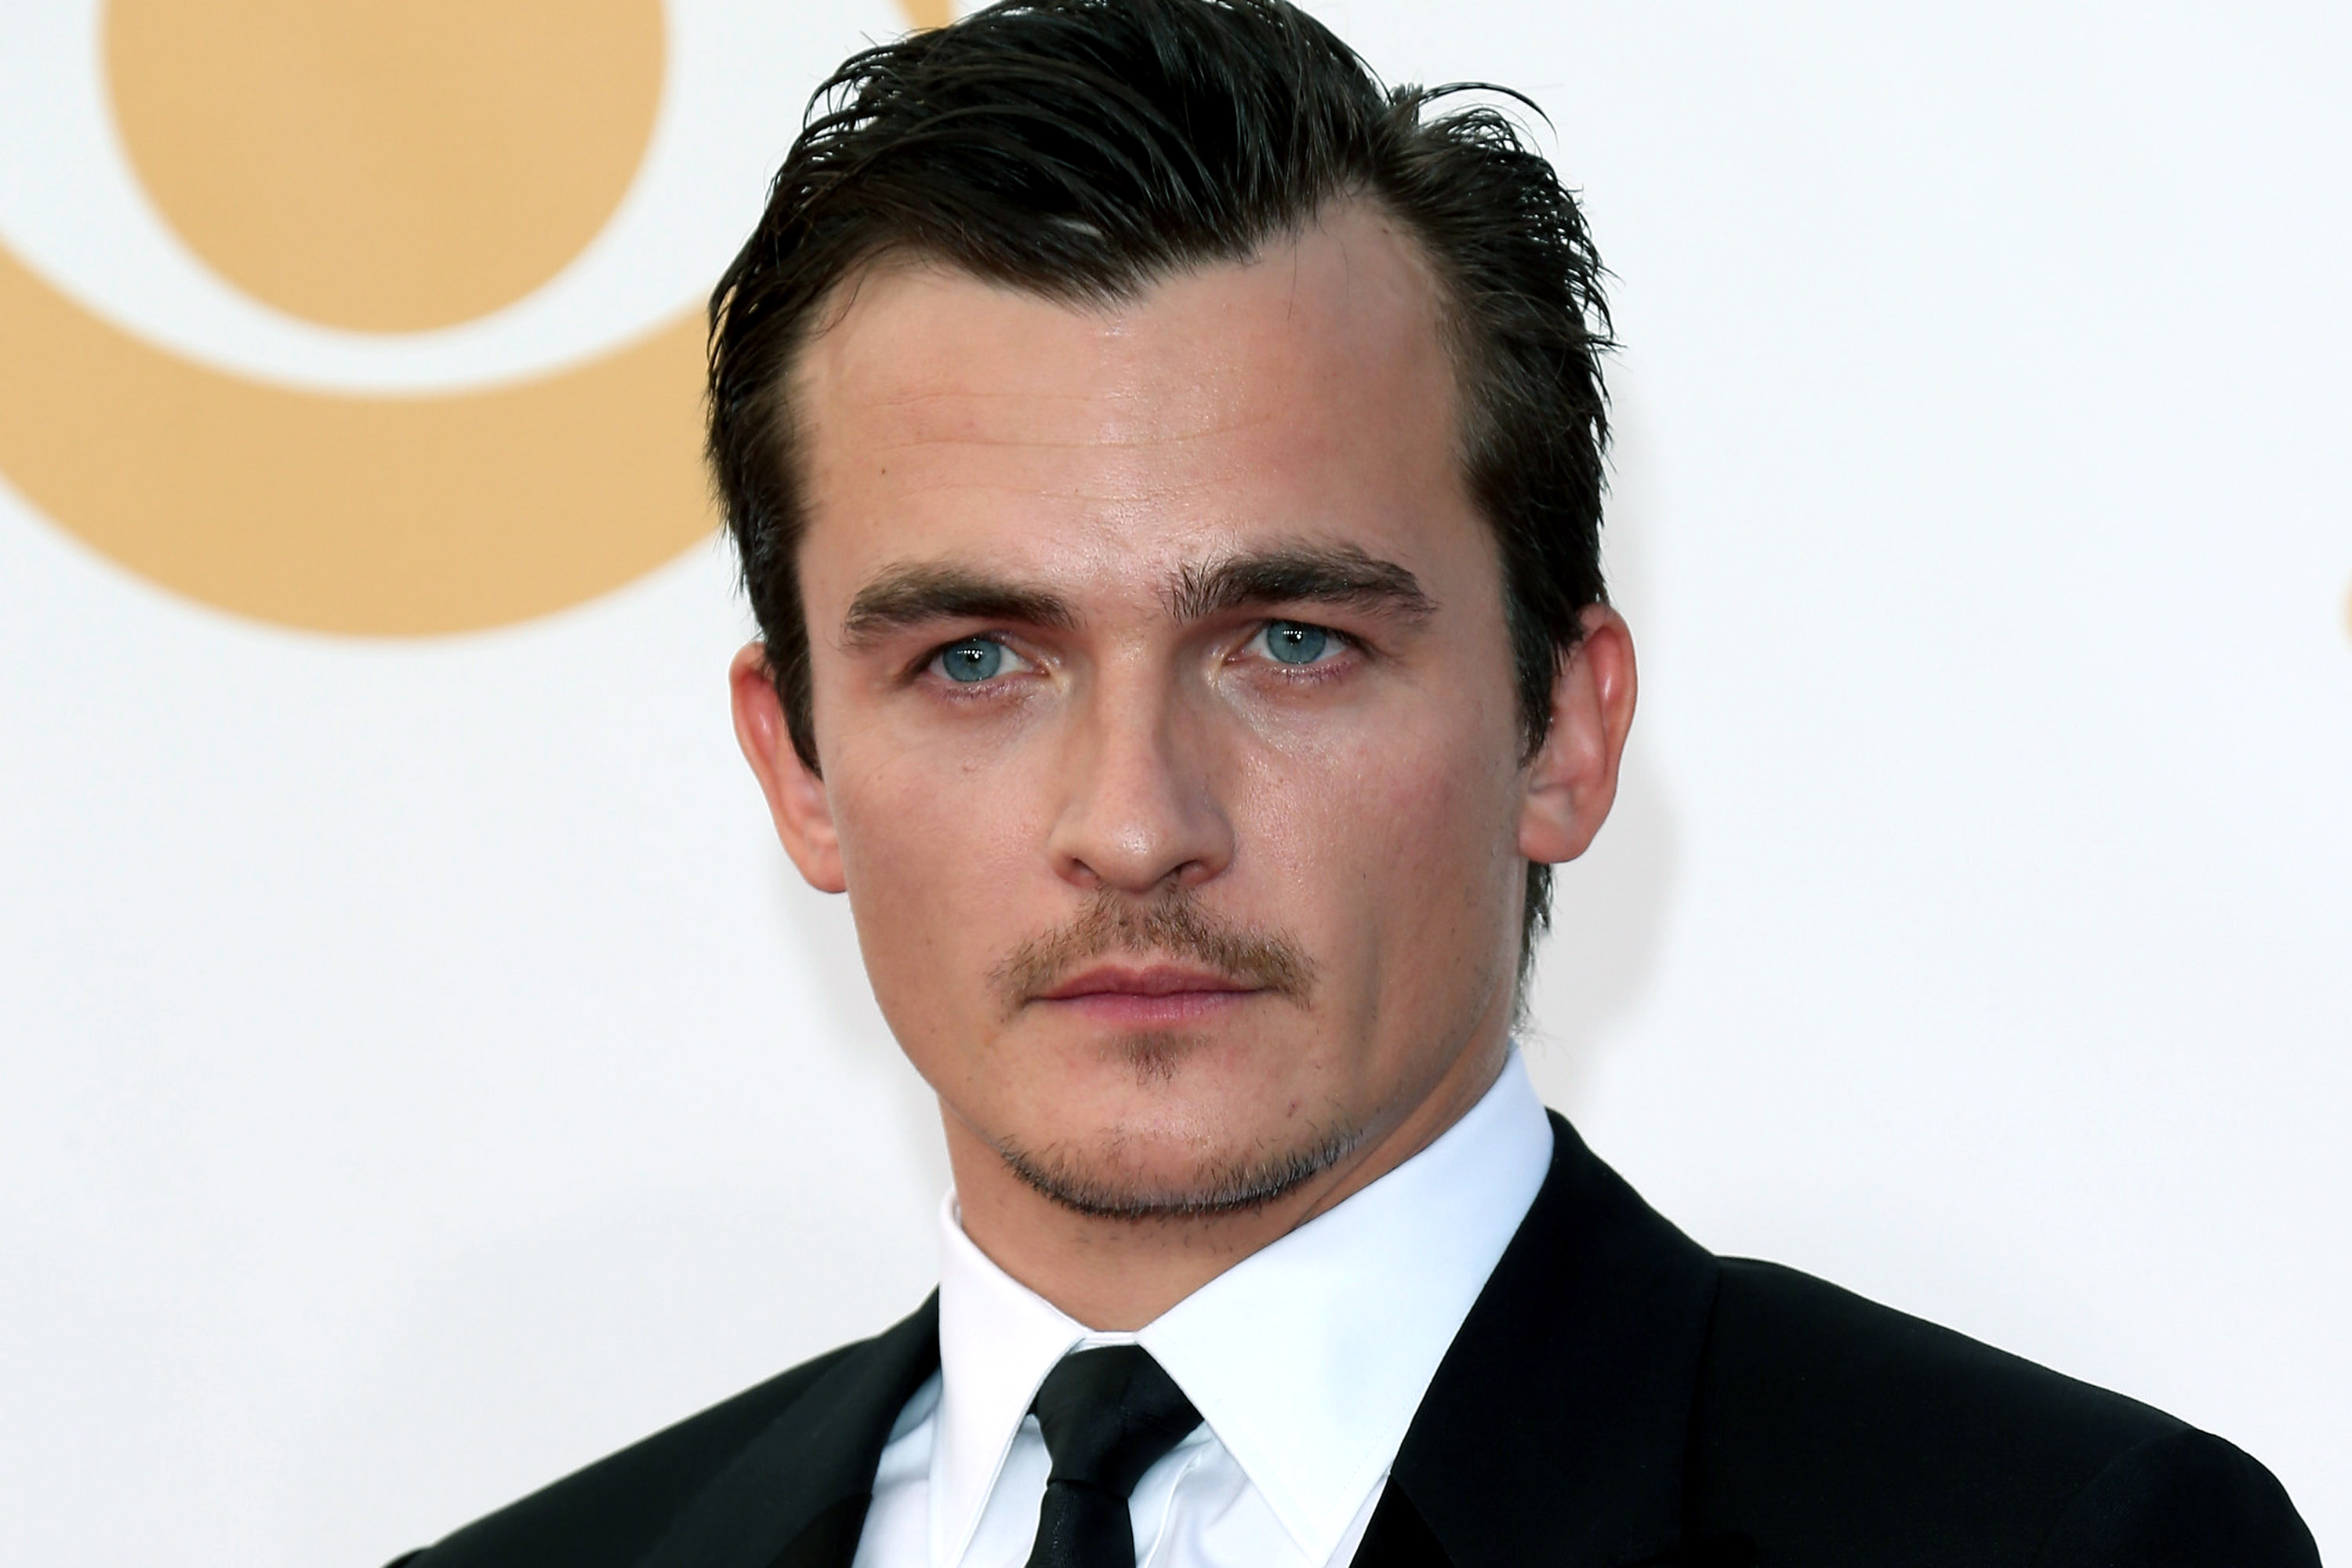 Rupert Friend earned a  million dollar salary, leaving the net worth at 4 million in 2017